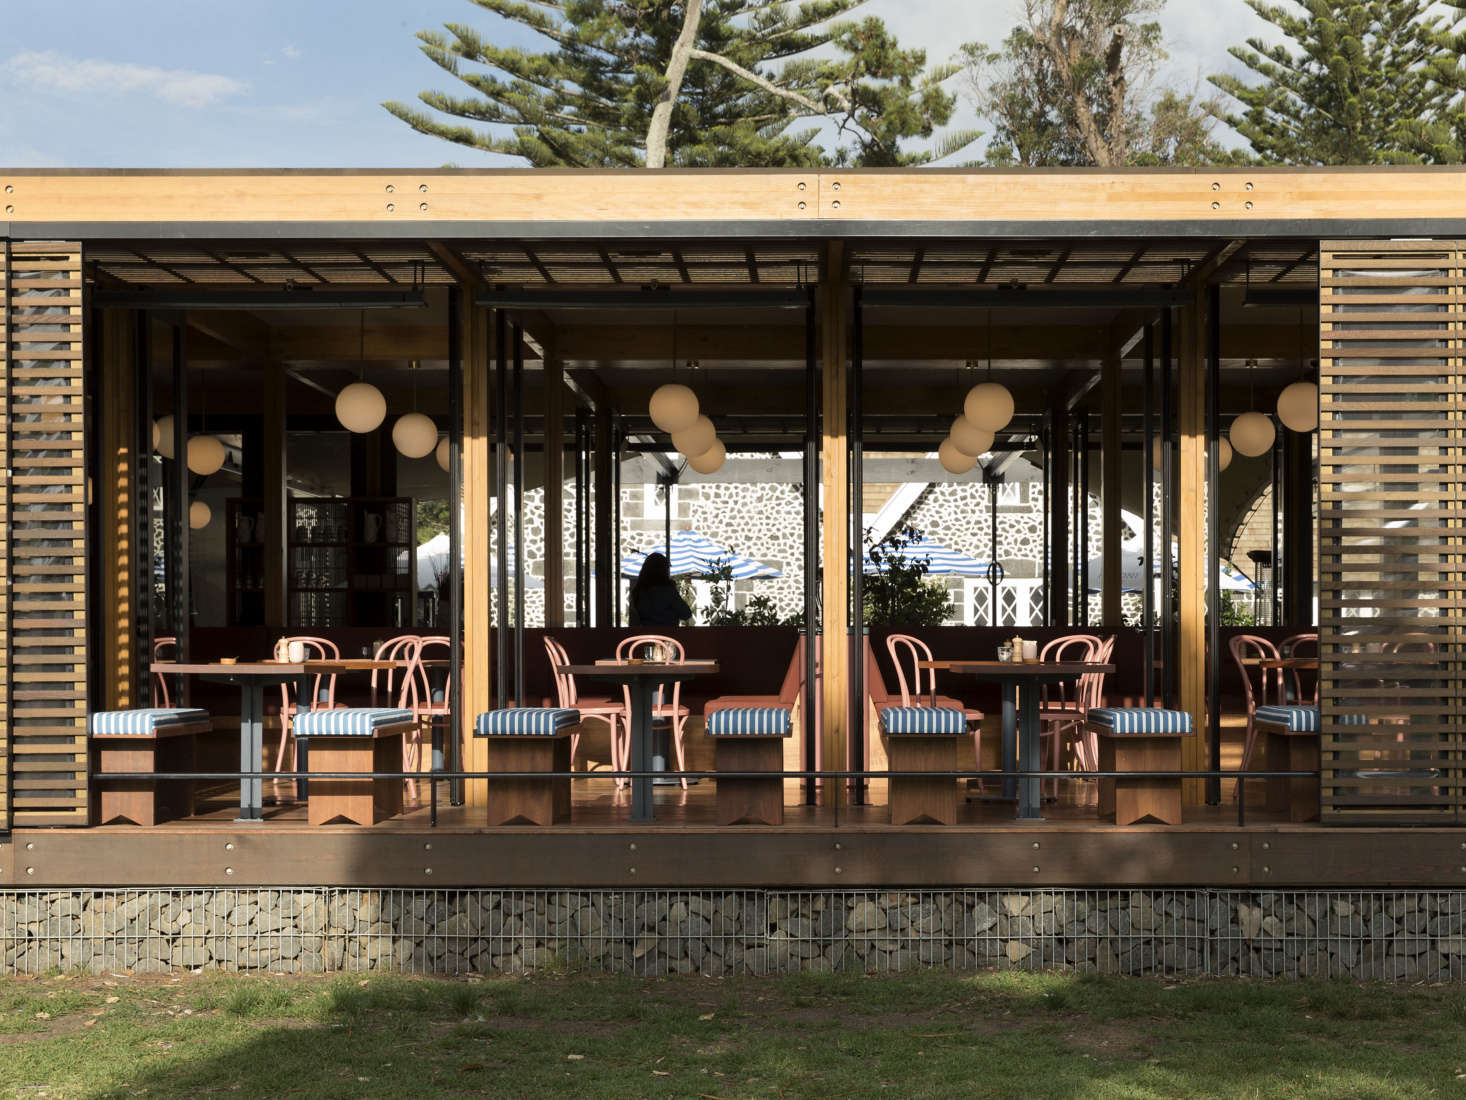 The restaurant addition is designed with cedar slats, blackened steel, and a gabion wall foundation. See the restaurant courtyard and surrounding landscape design by Lockhart&#8